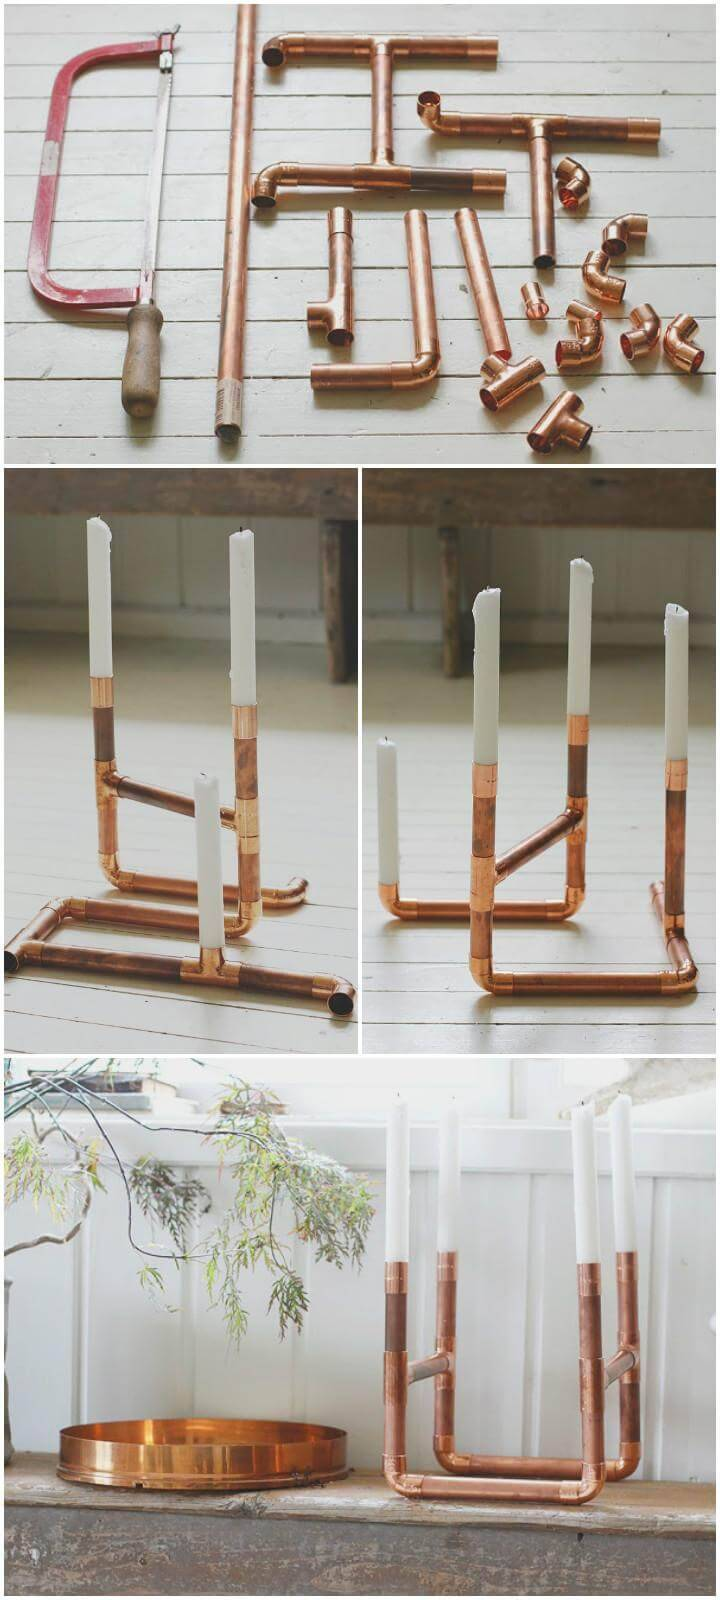 self-made copper pipe candle holder